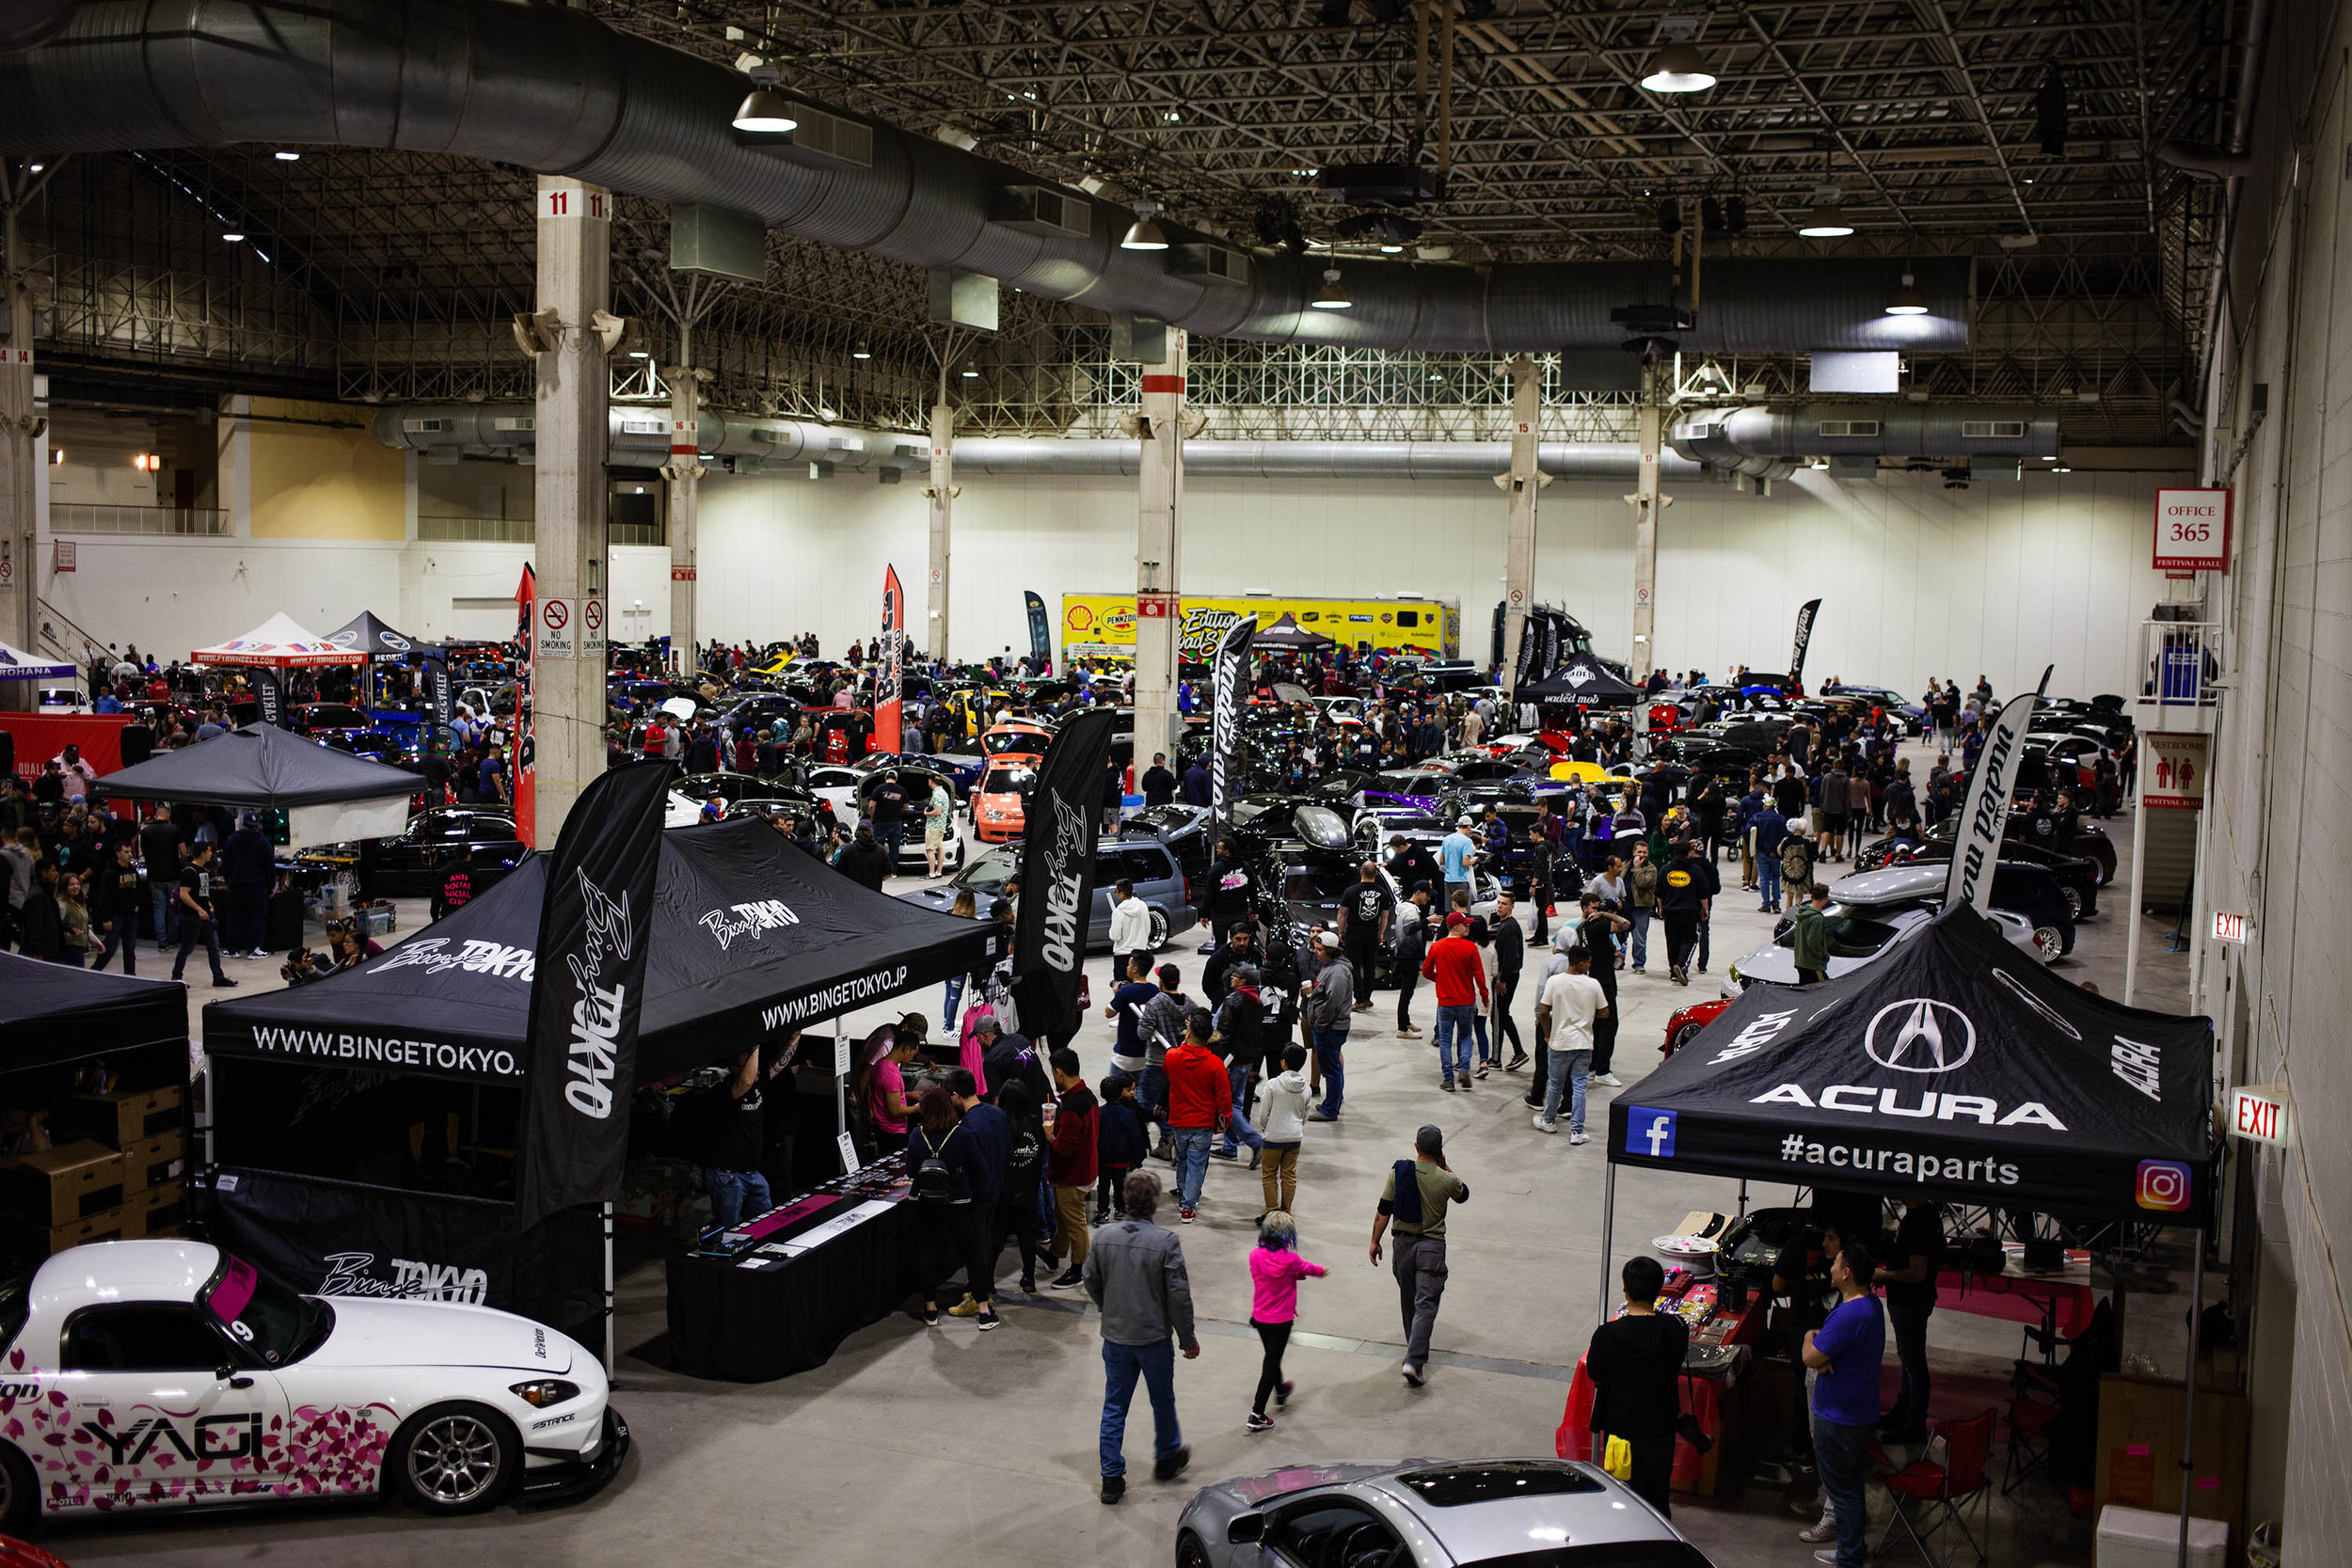 Over 300 builds from all corners of the Midwest / East regions came together for this event.